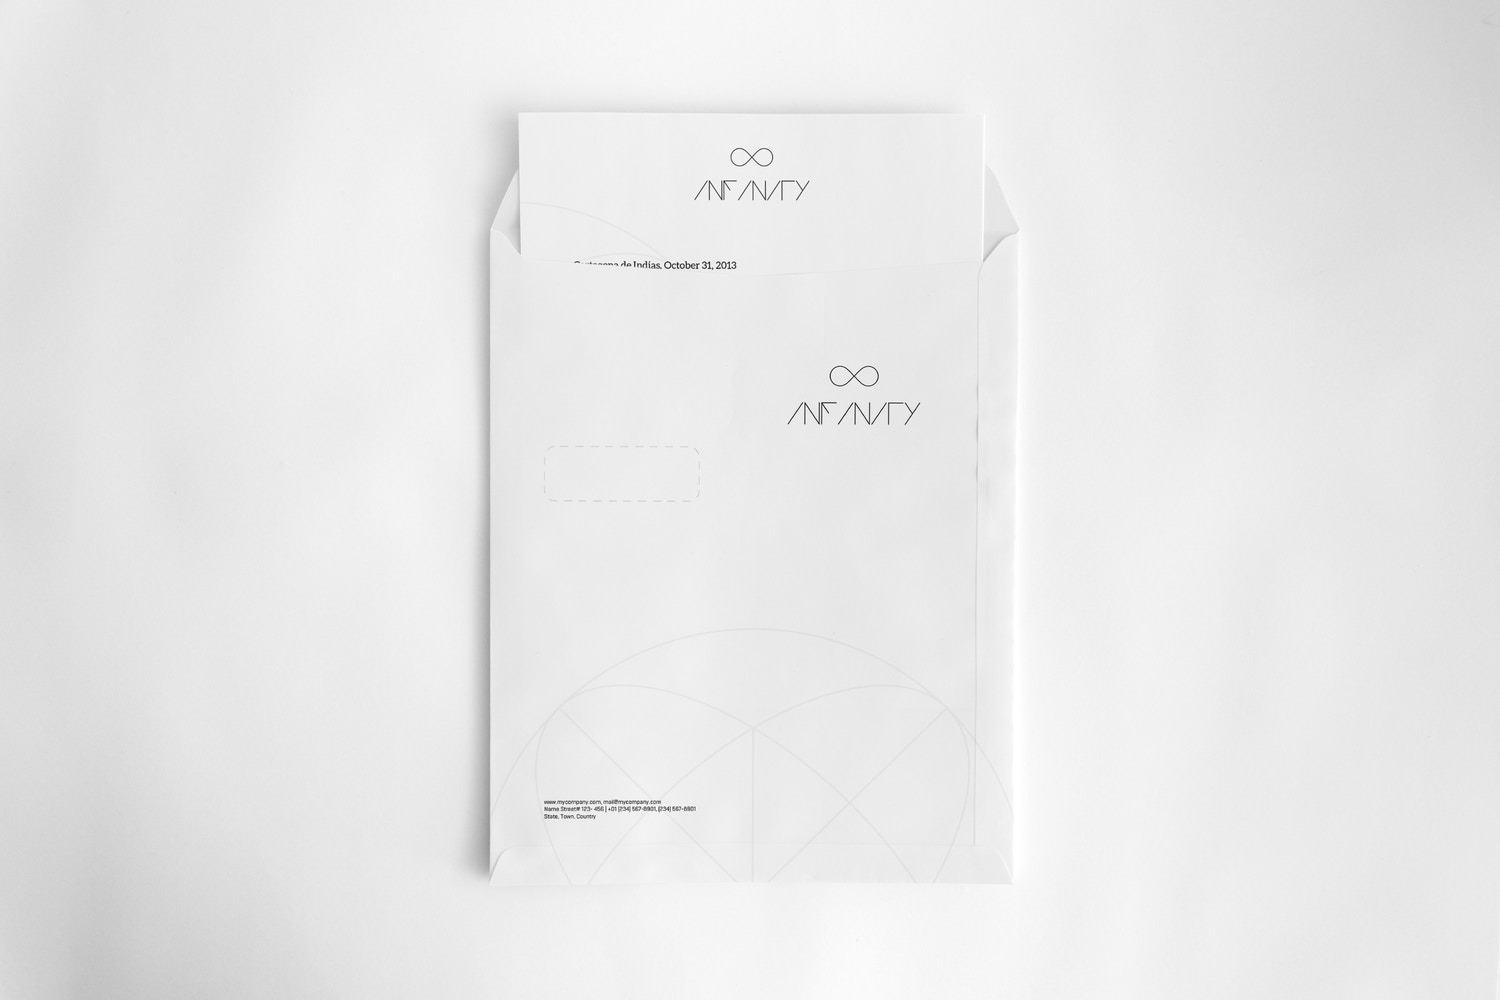 A4 Envelope 01 by Original Mockups on Original Mockups